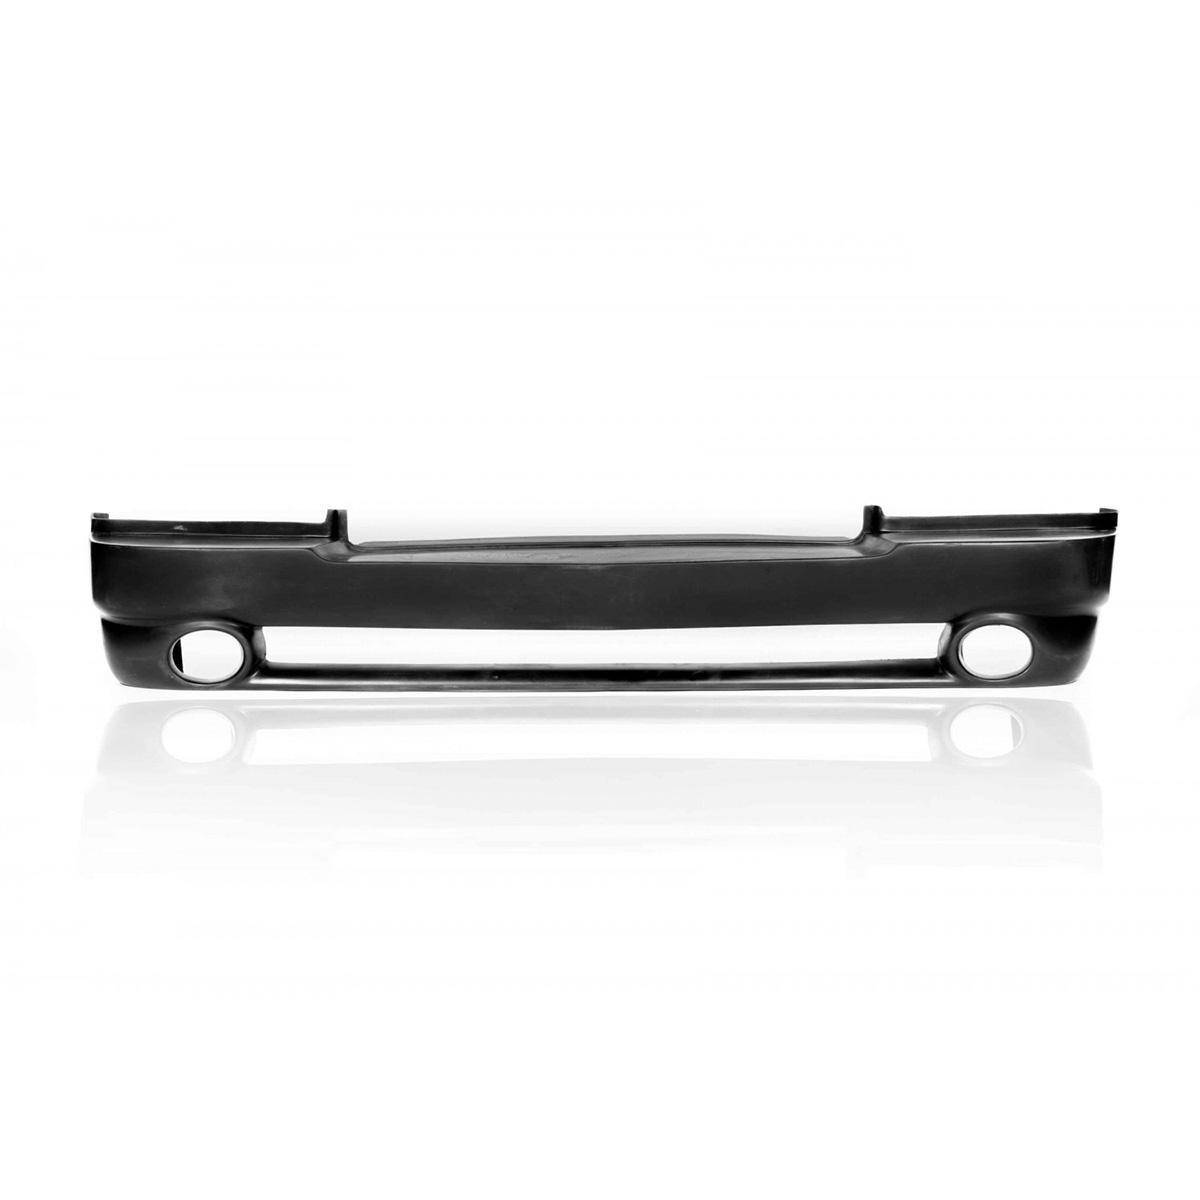 Chevy Caprice 1987-1990 MS Style 1 Piece Polyurethane Front Bumper